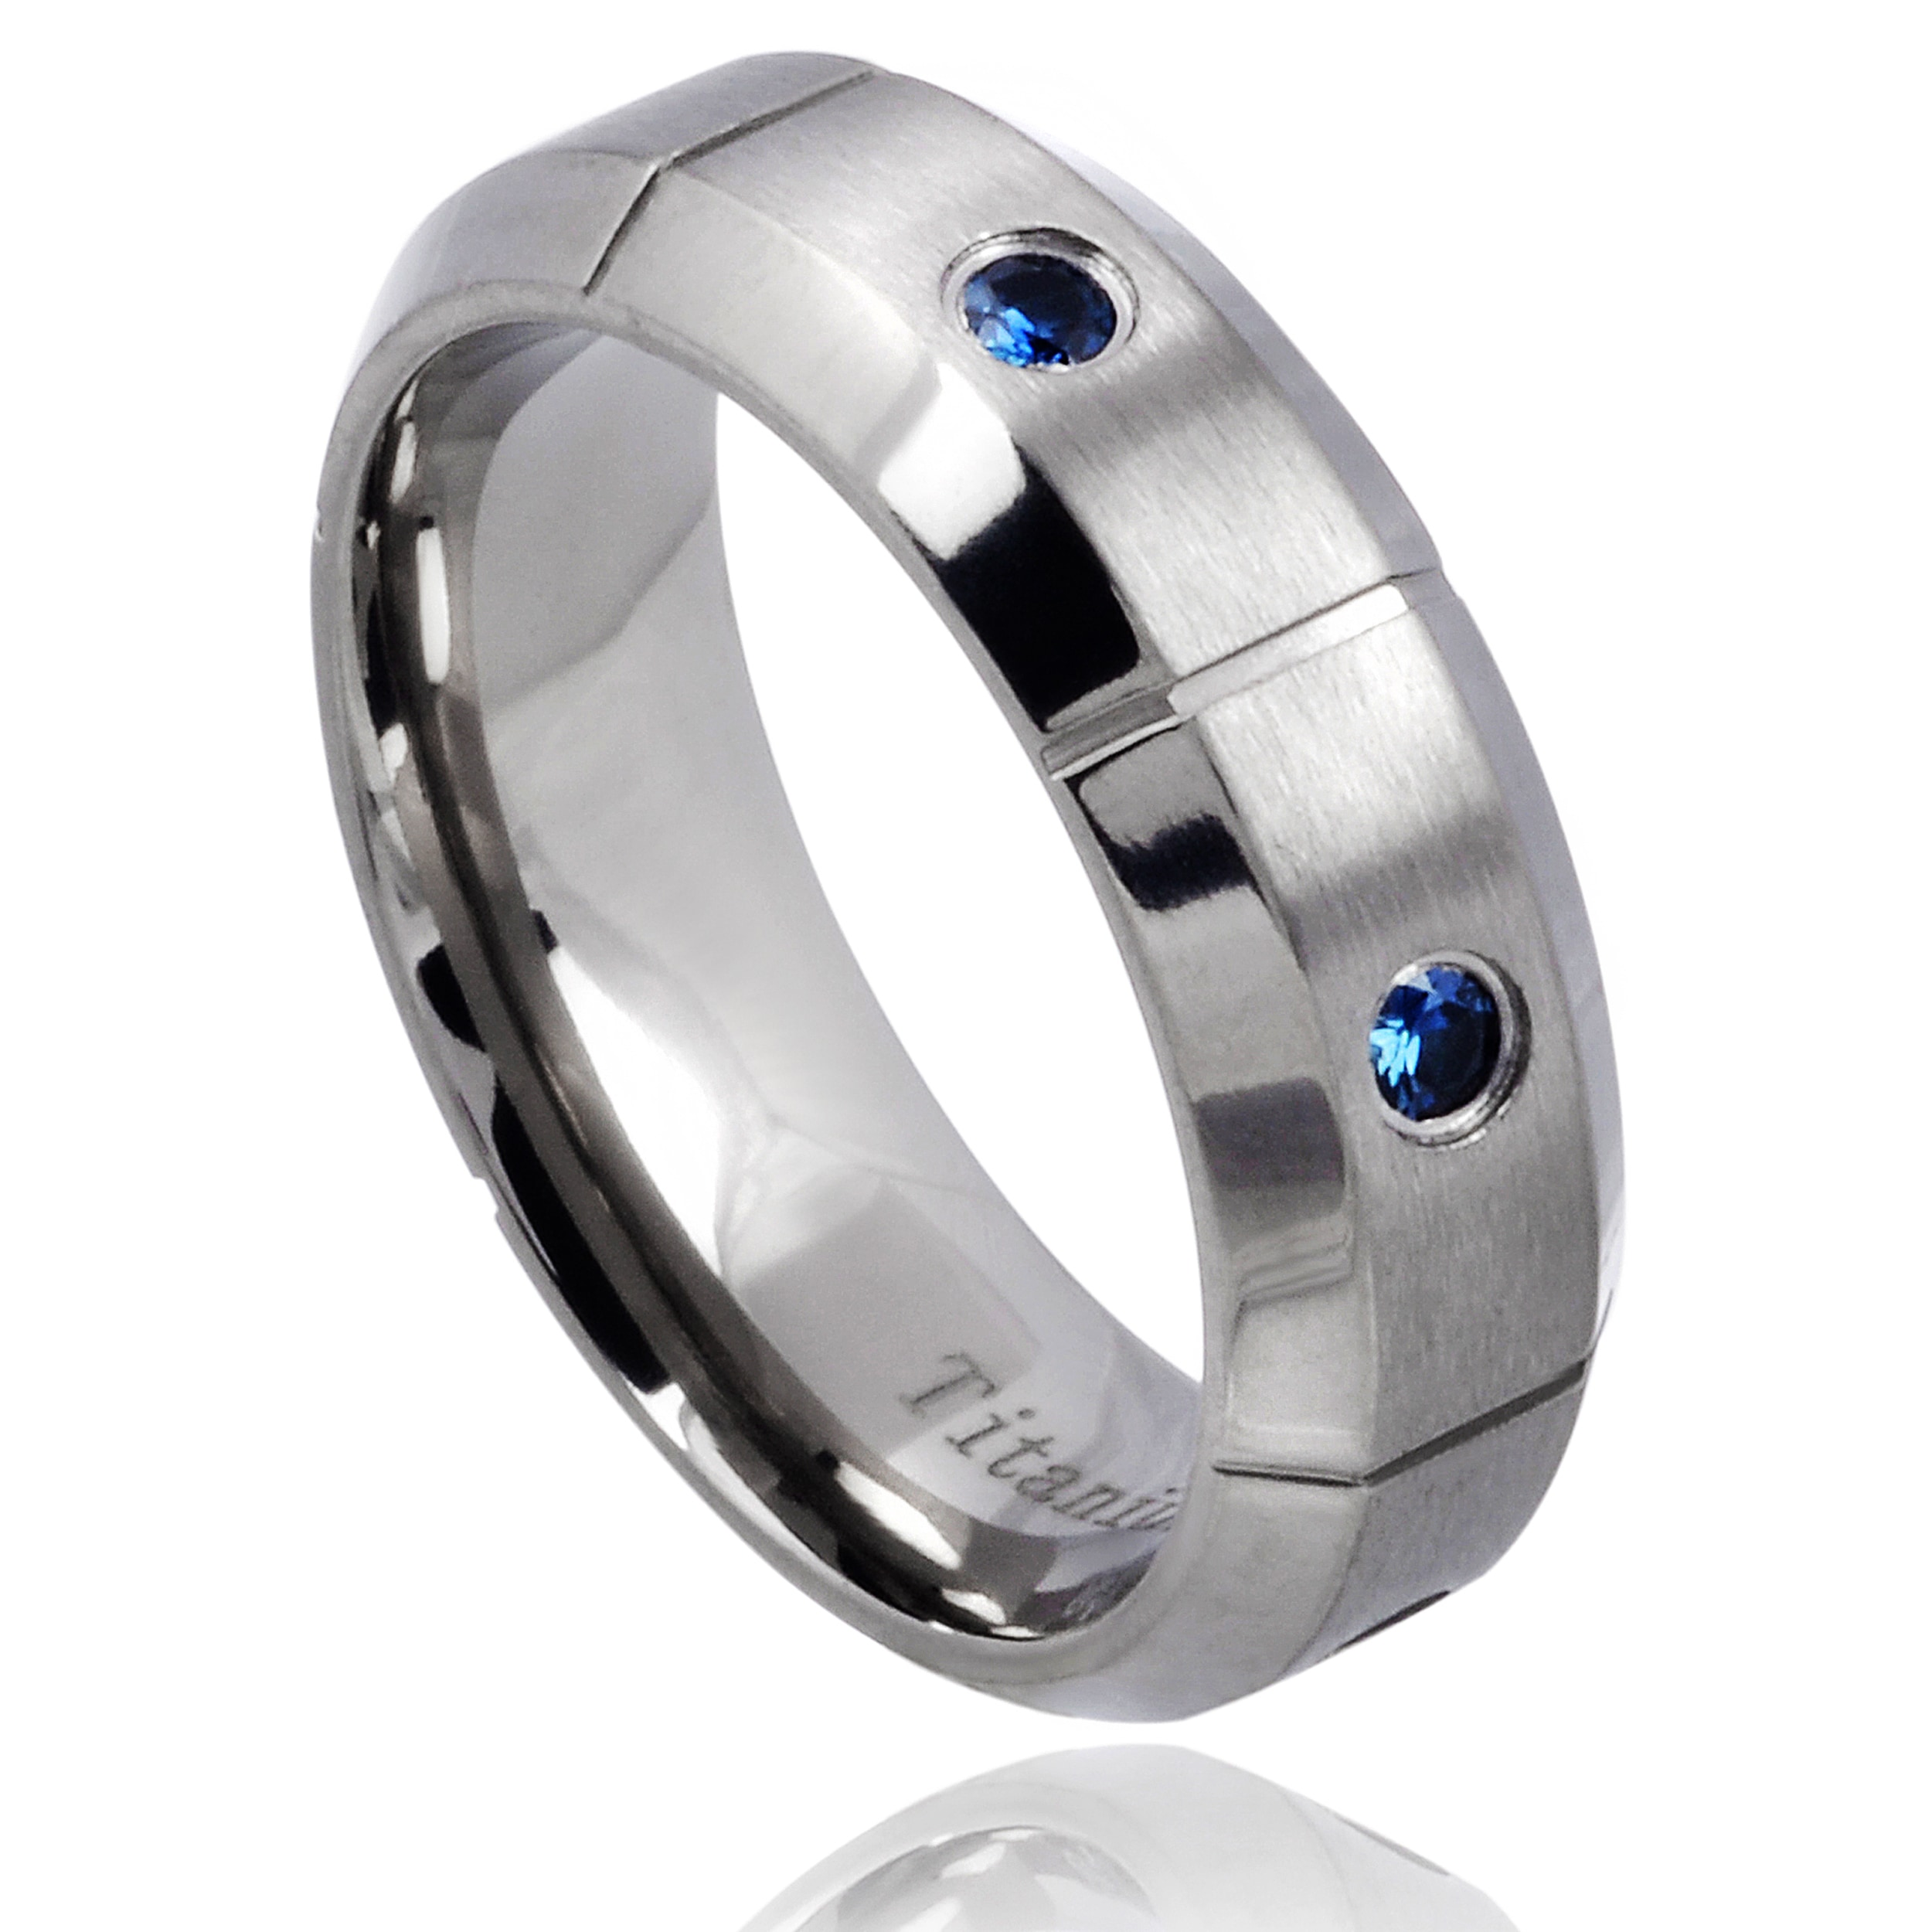 watches shipping sapphire mens eternity product today ring black sterling silver miadora jewelry men free s overstock